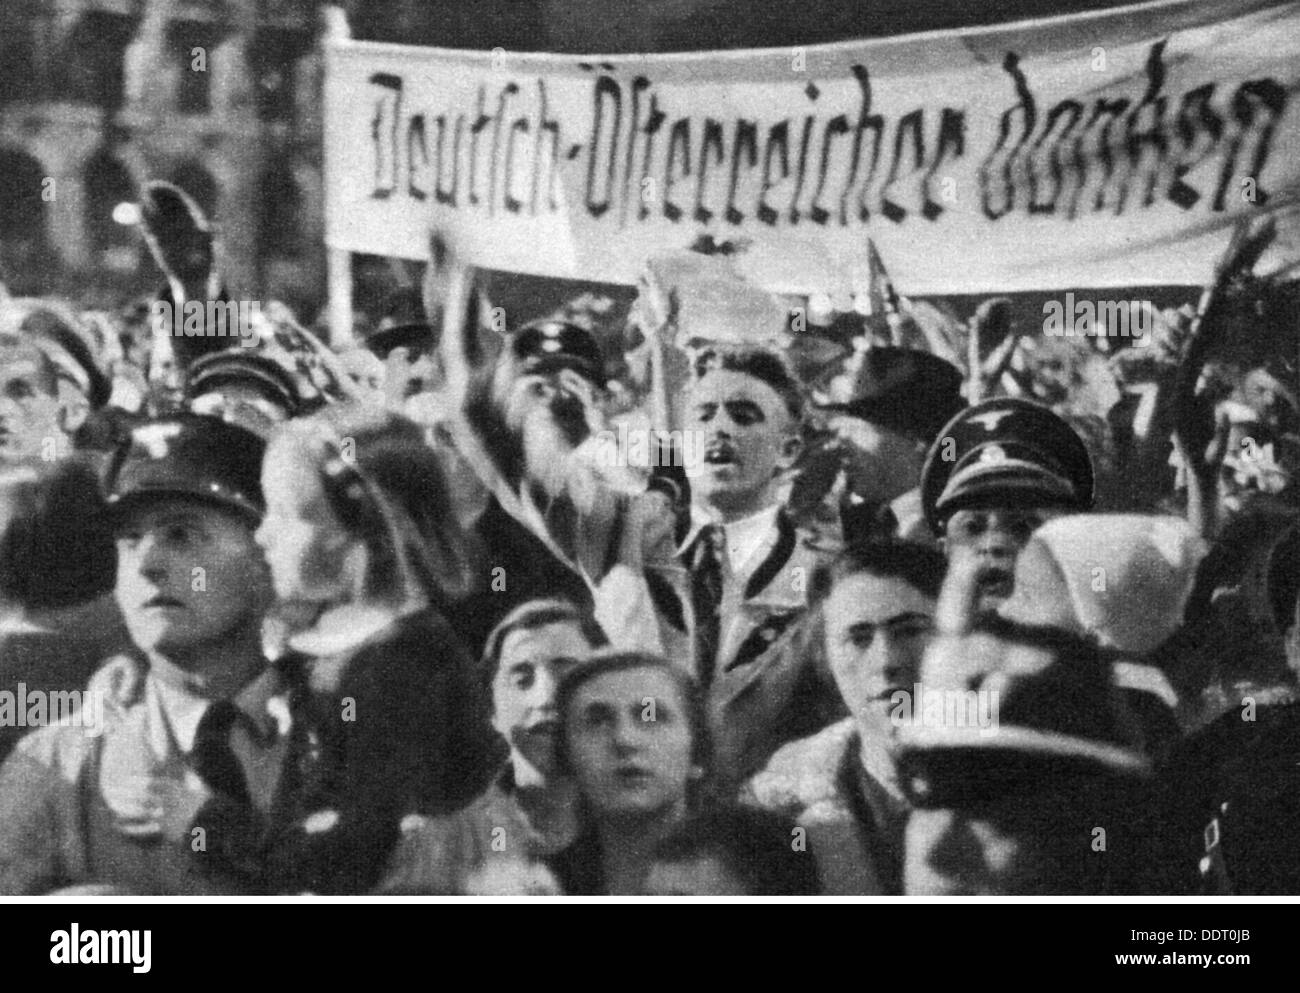 Nazism / National Socialism, politics, annexation of Austria 1938, Austrians at rally, 1938, 20th century, 1930s, Stock Photo